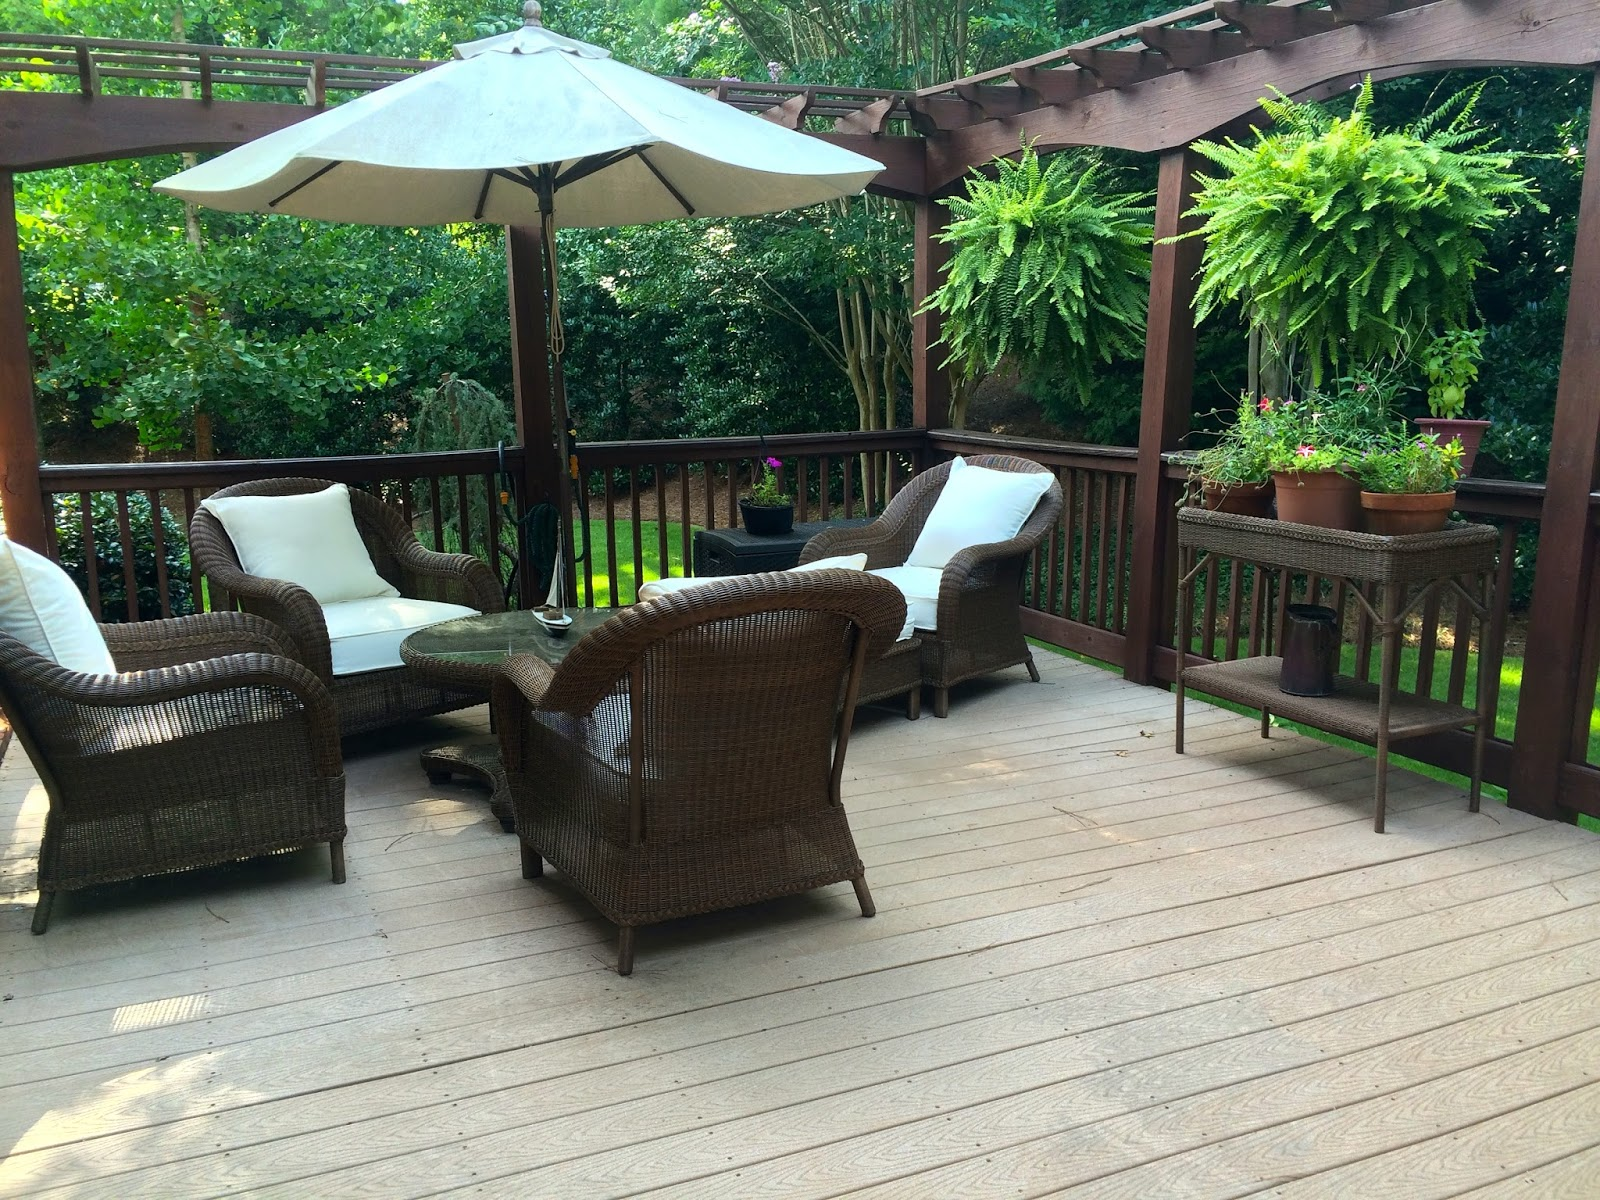 Our Back Deck...beautiful Hanging Ferns And Such A Lovely Seating Area...  This Is Palmetto Outdoor Wicker From Every Oneu0027s Favorite. The Pottery Barn. Part 47